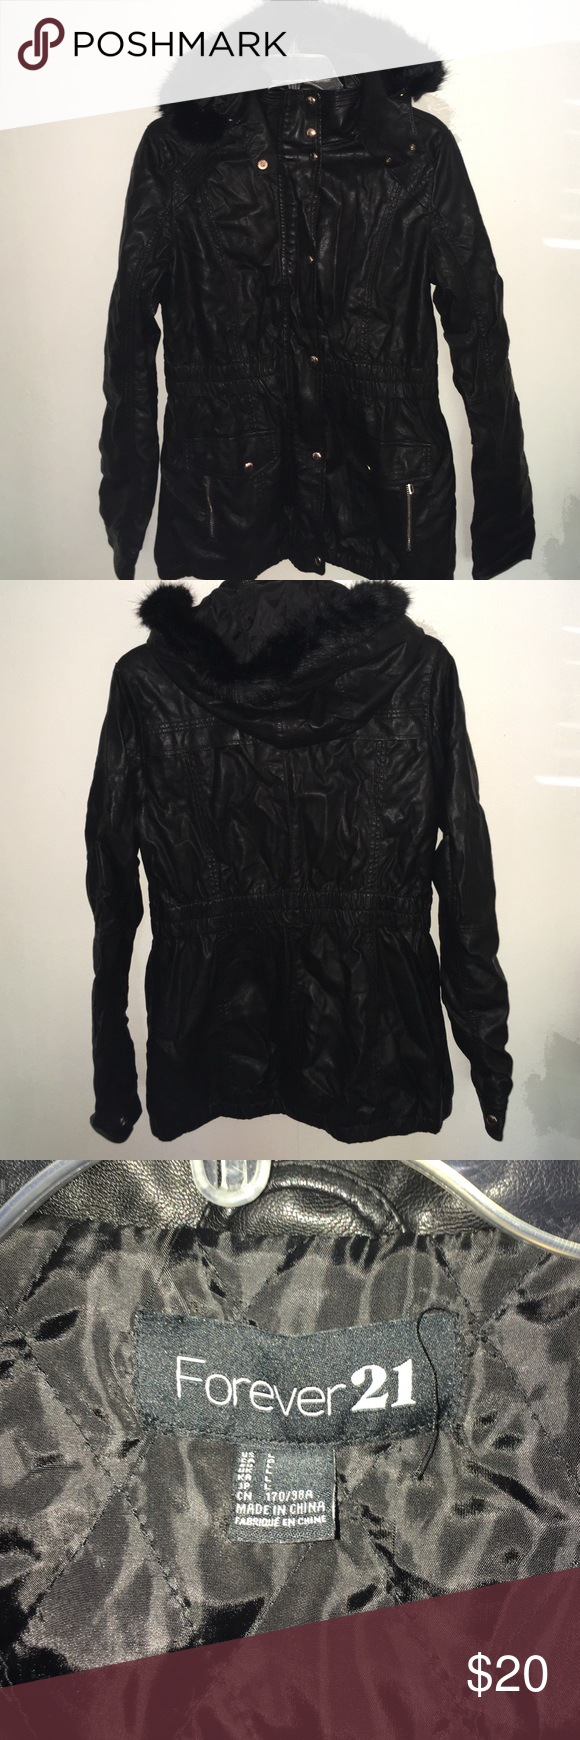 Faux Leather Jacket With Hood This jacket is basically brand new!! Sorry for the wrinkles it's been stored in a box. This is a great deal and a great staple piece to add to your outfit this fall🍂 THE COAT IS FOREVER 21 BRAND BUT I LISTED FASHION NOVA FOR BETTER EXPOSURE Fashion Nova Jackets & Coats